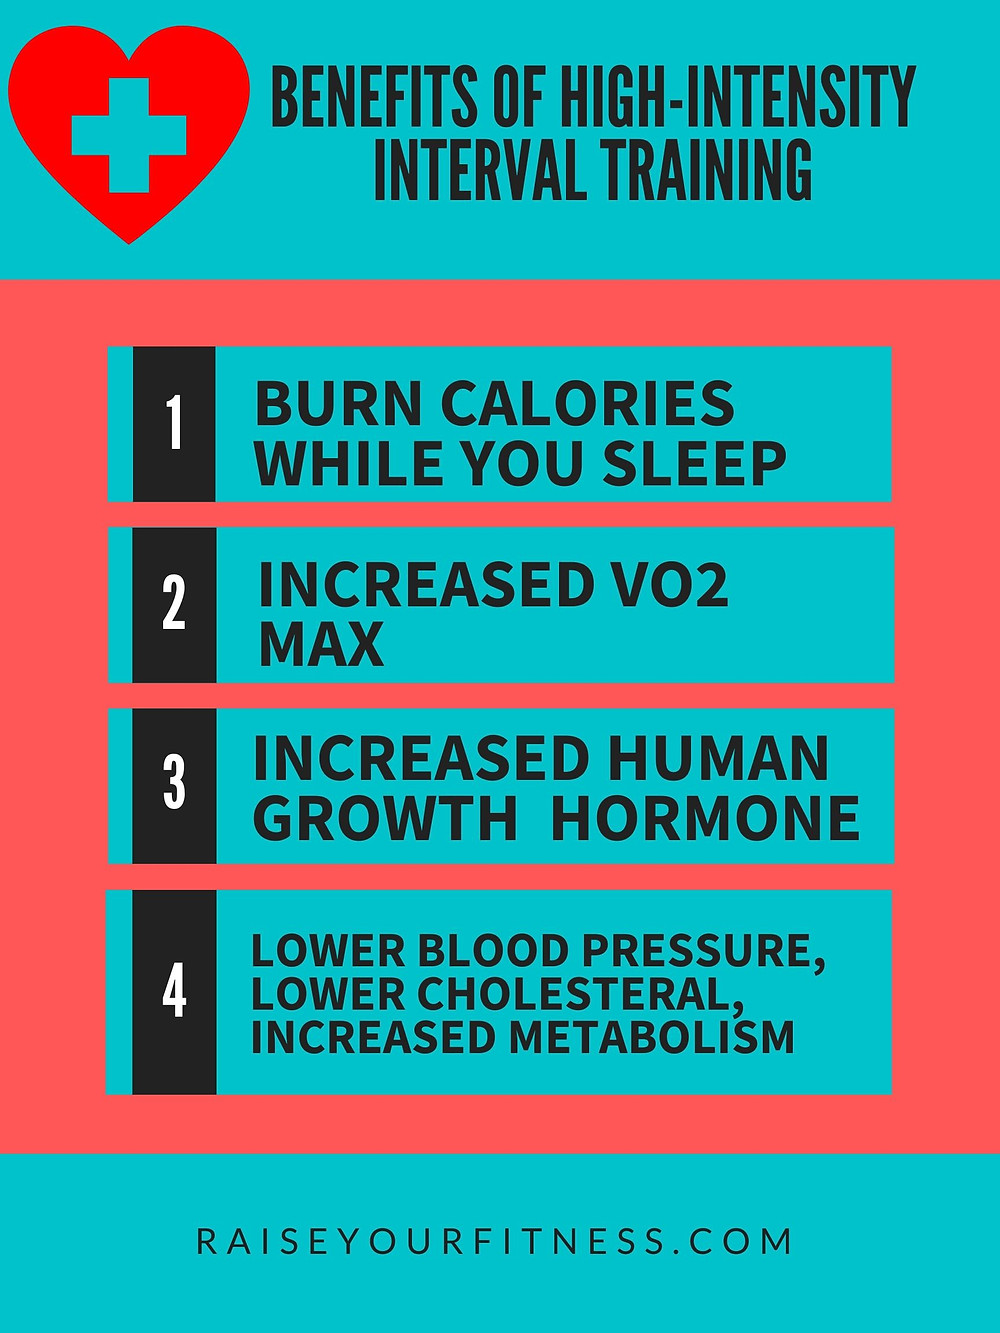 The benefits of high-intensity interval training. Restating the points we went over